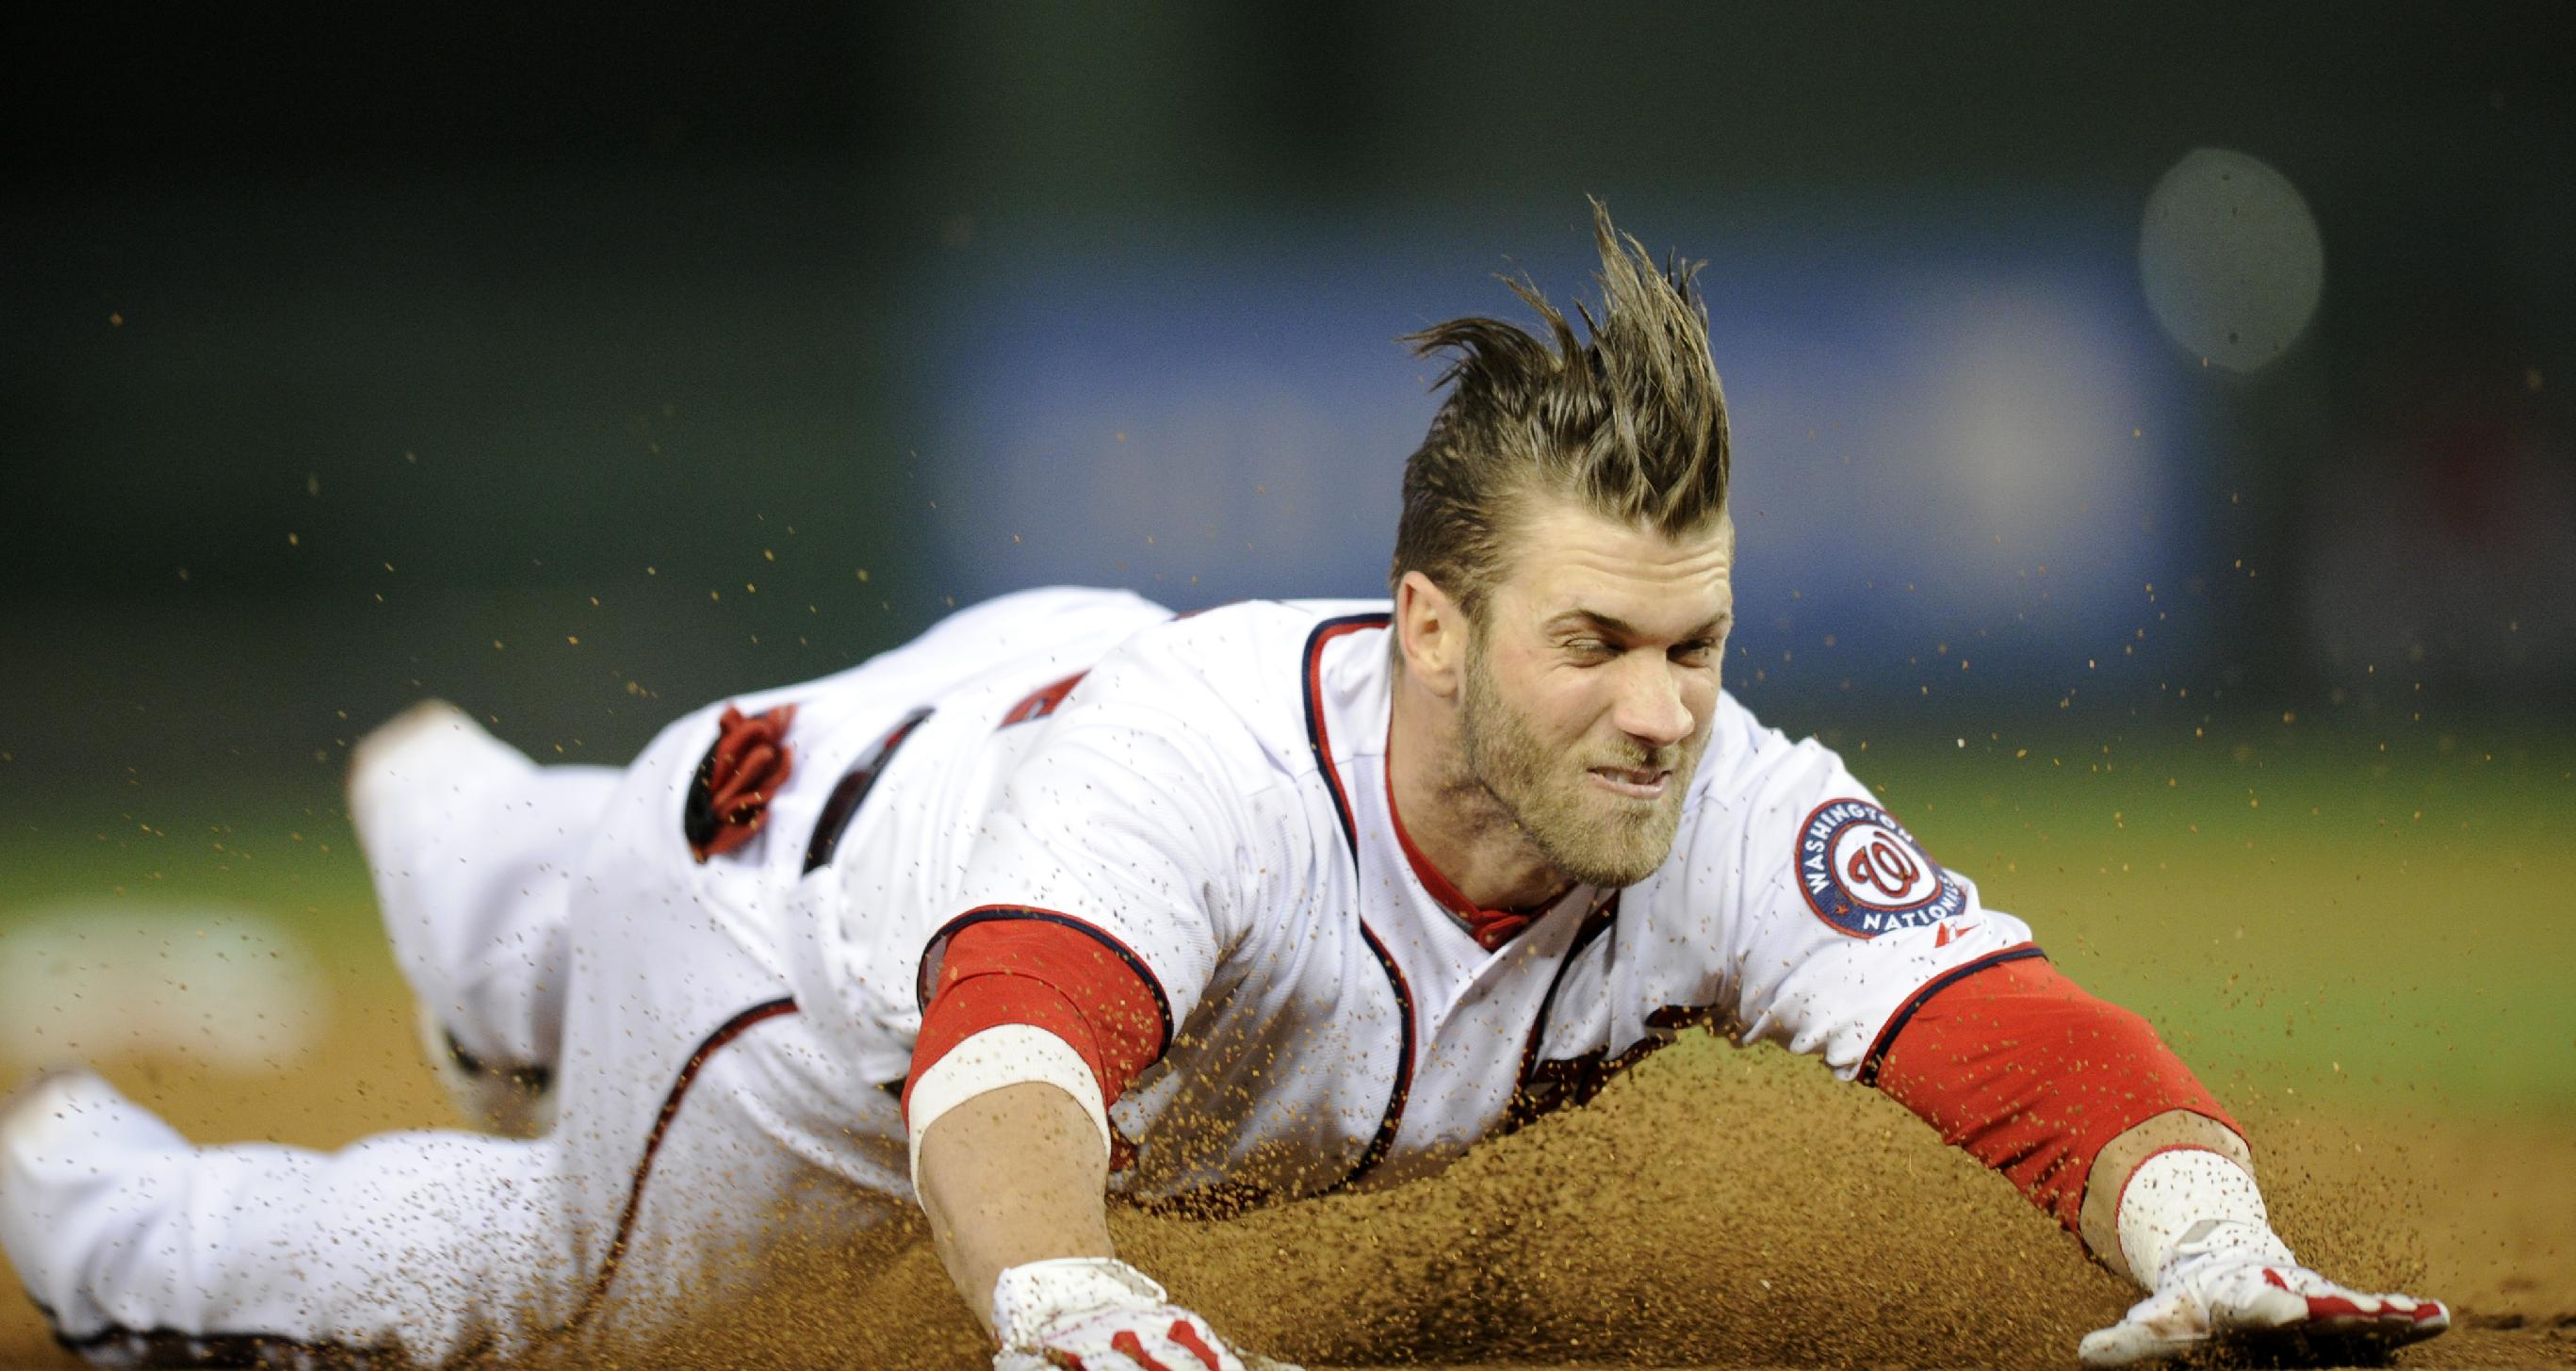 Bryce Harper needs thumb surgery, out until at least July